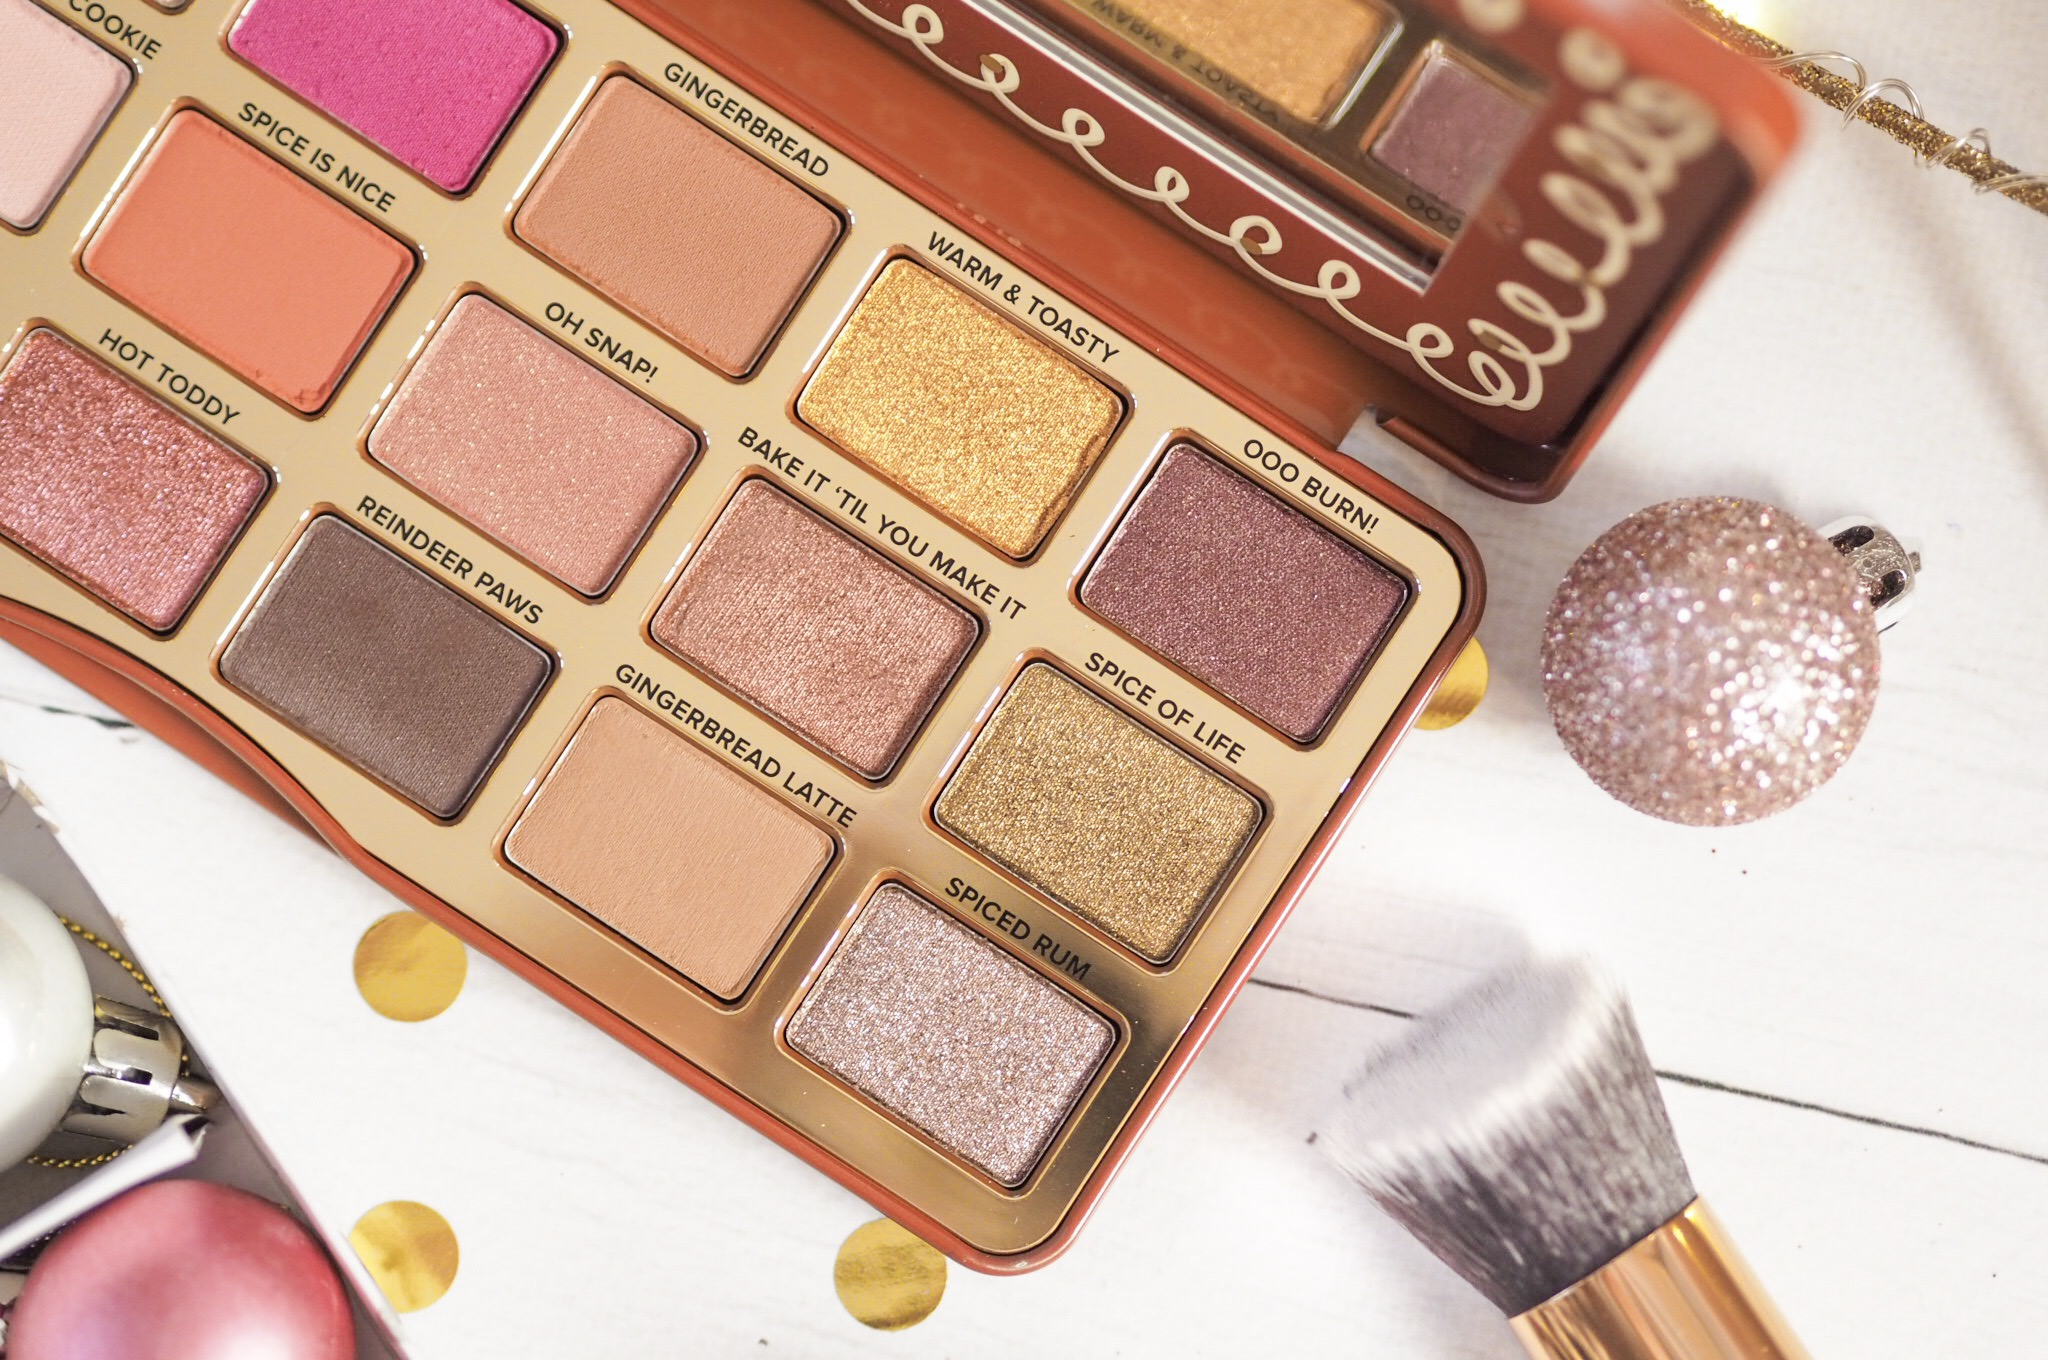 Too Faced Gingerbread Spice Eyeshadow Palette Review